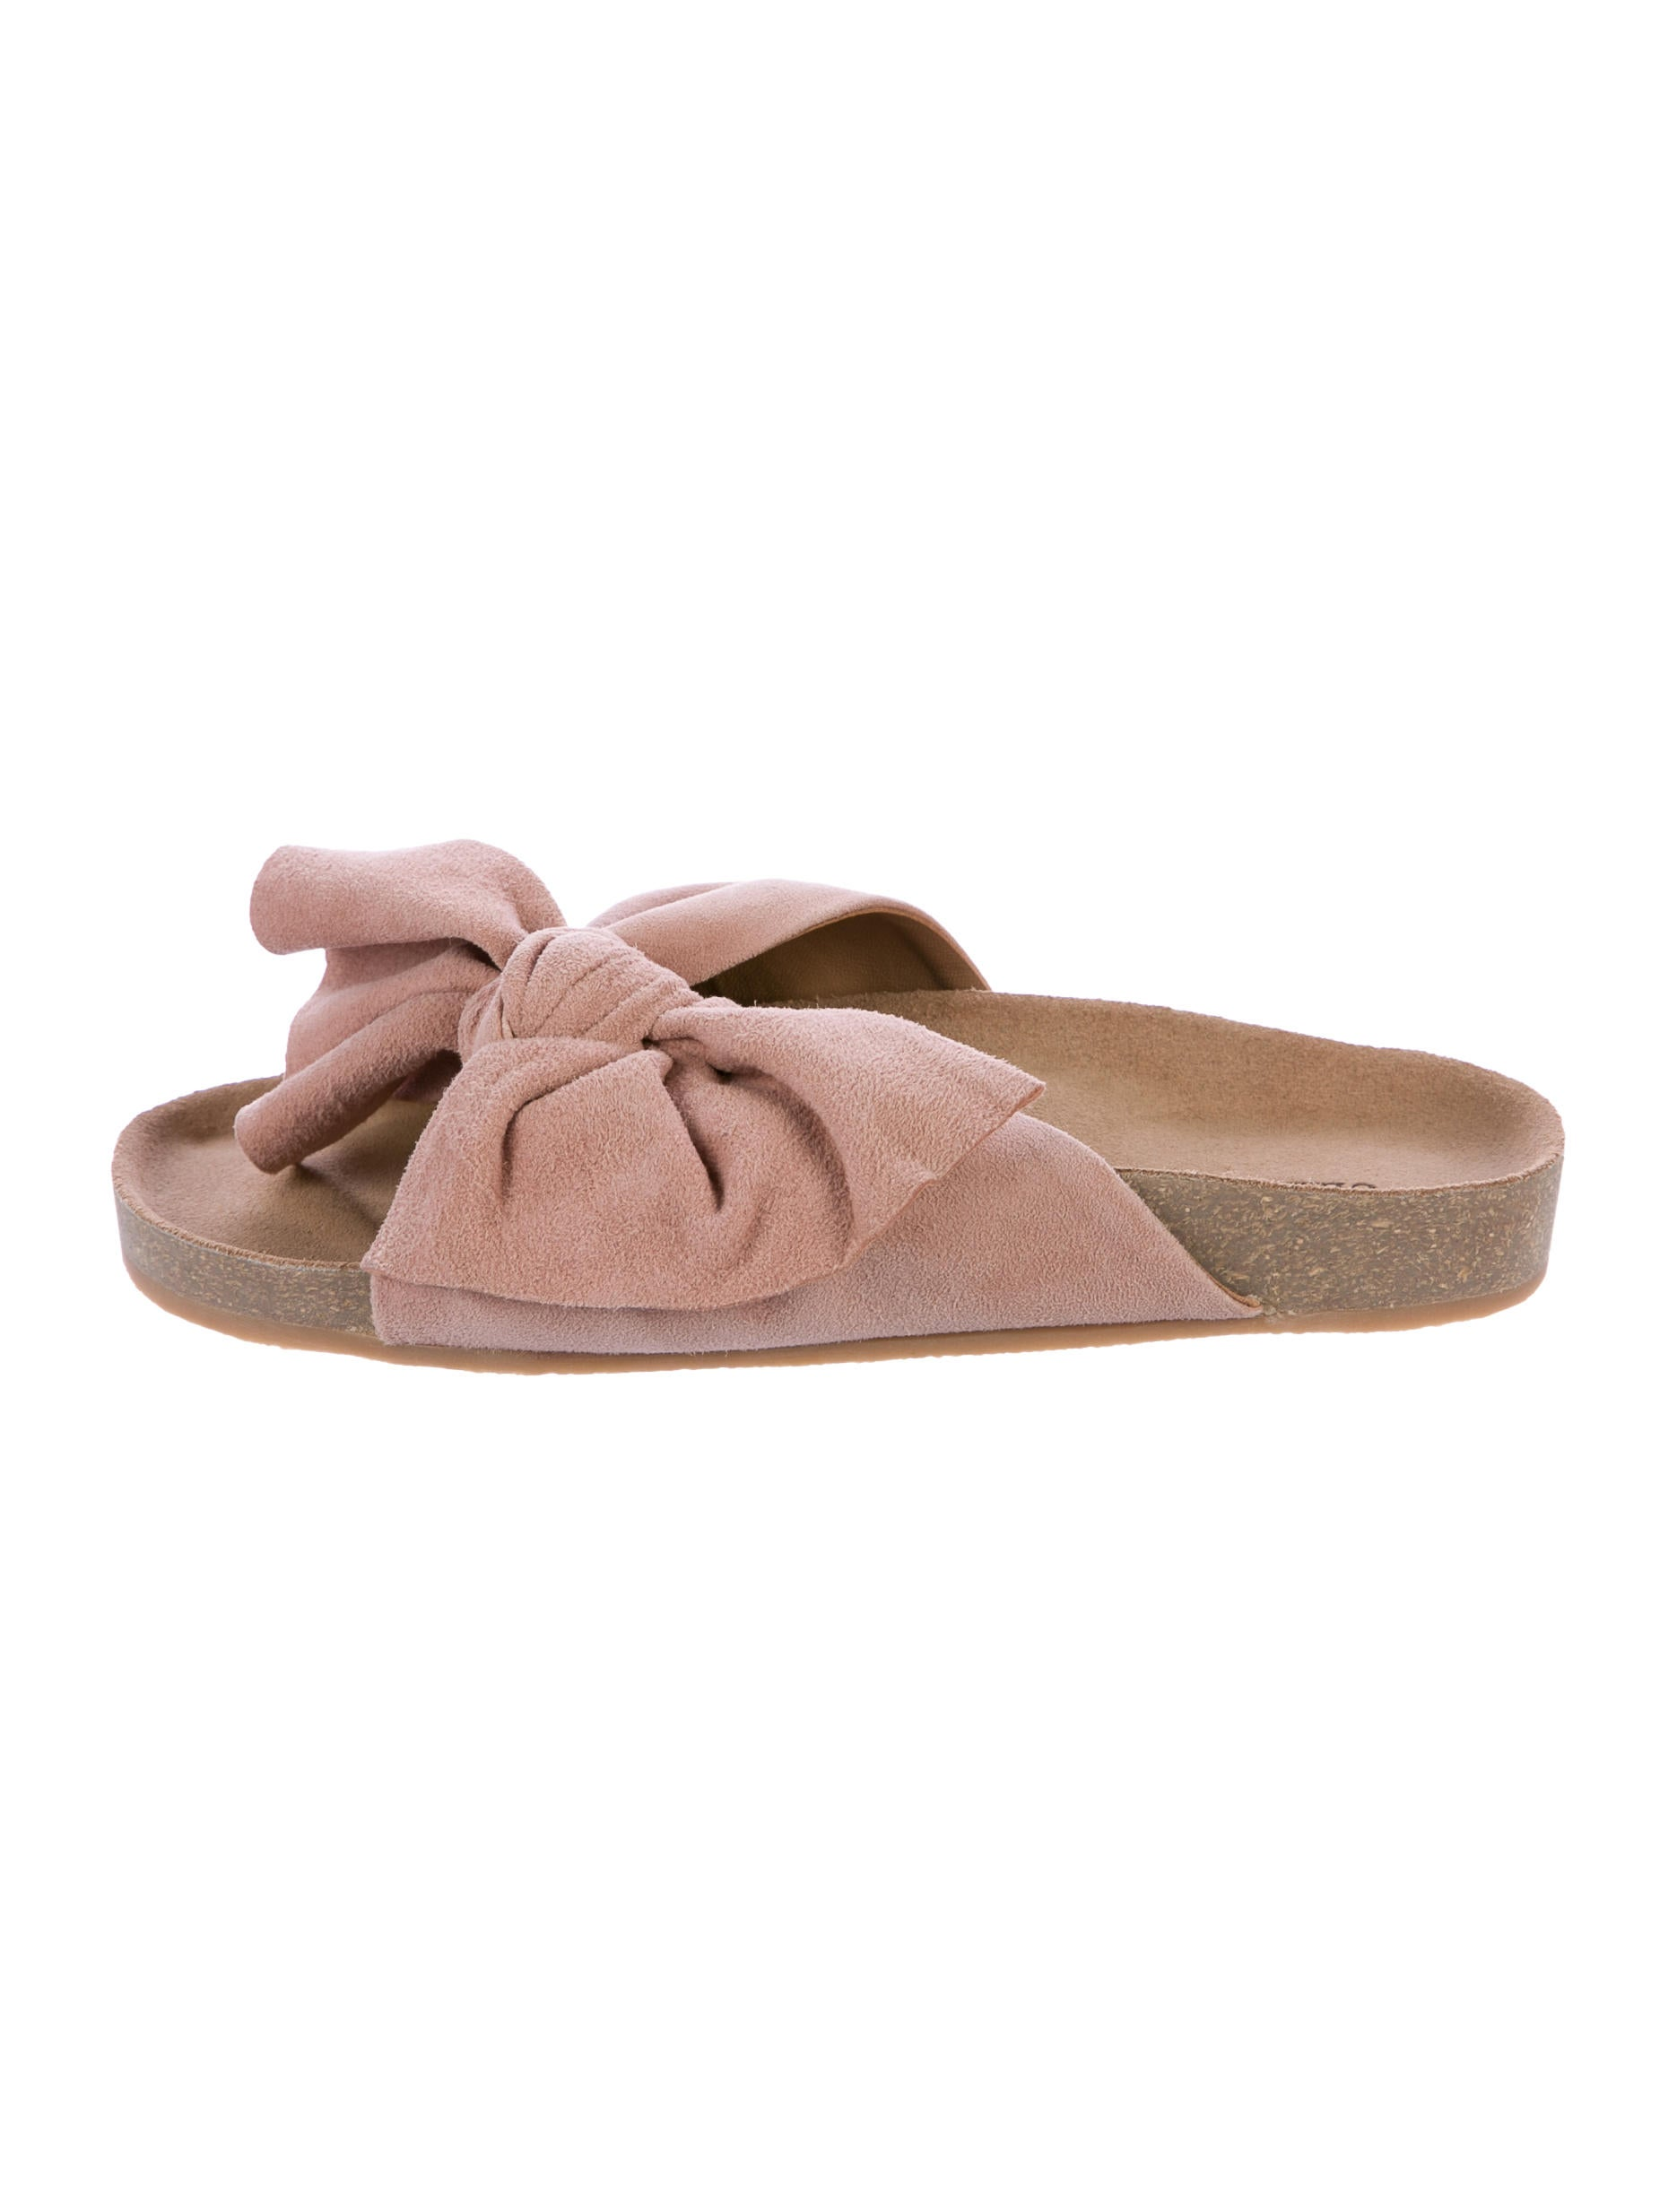 Ulla Johnson 2017 Ingrid Slide Sandals cheap sale nicekicks outlet free shipping clearance prices AnnYs1Q